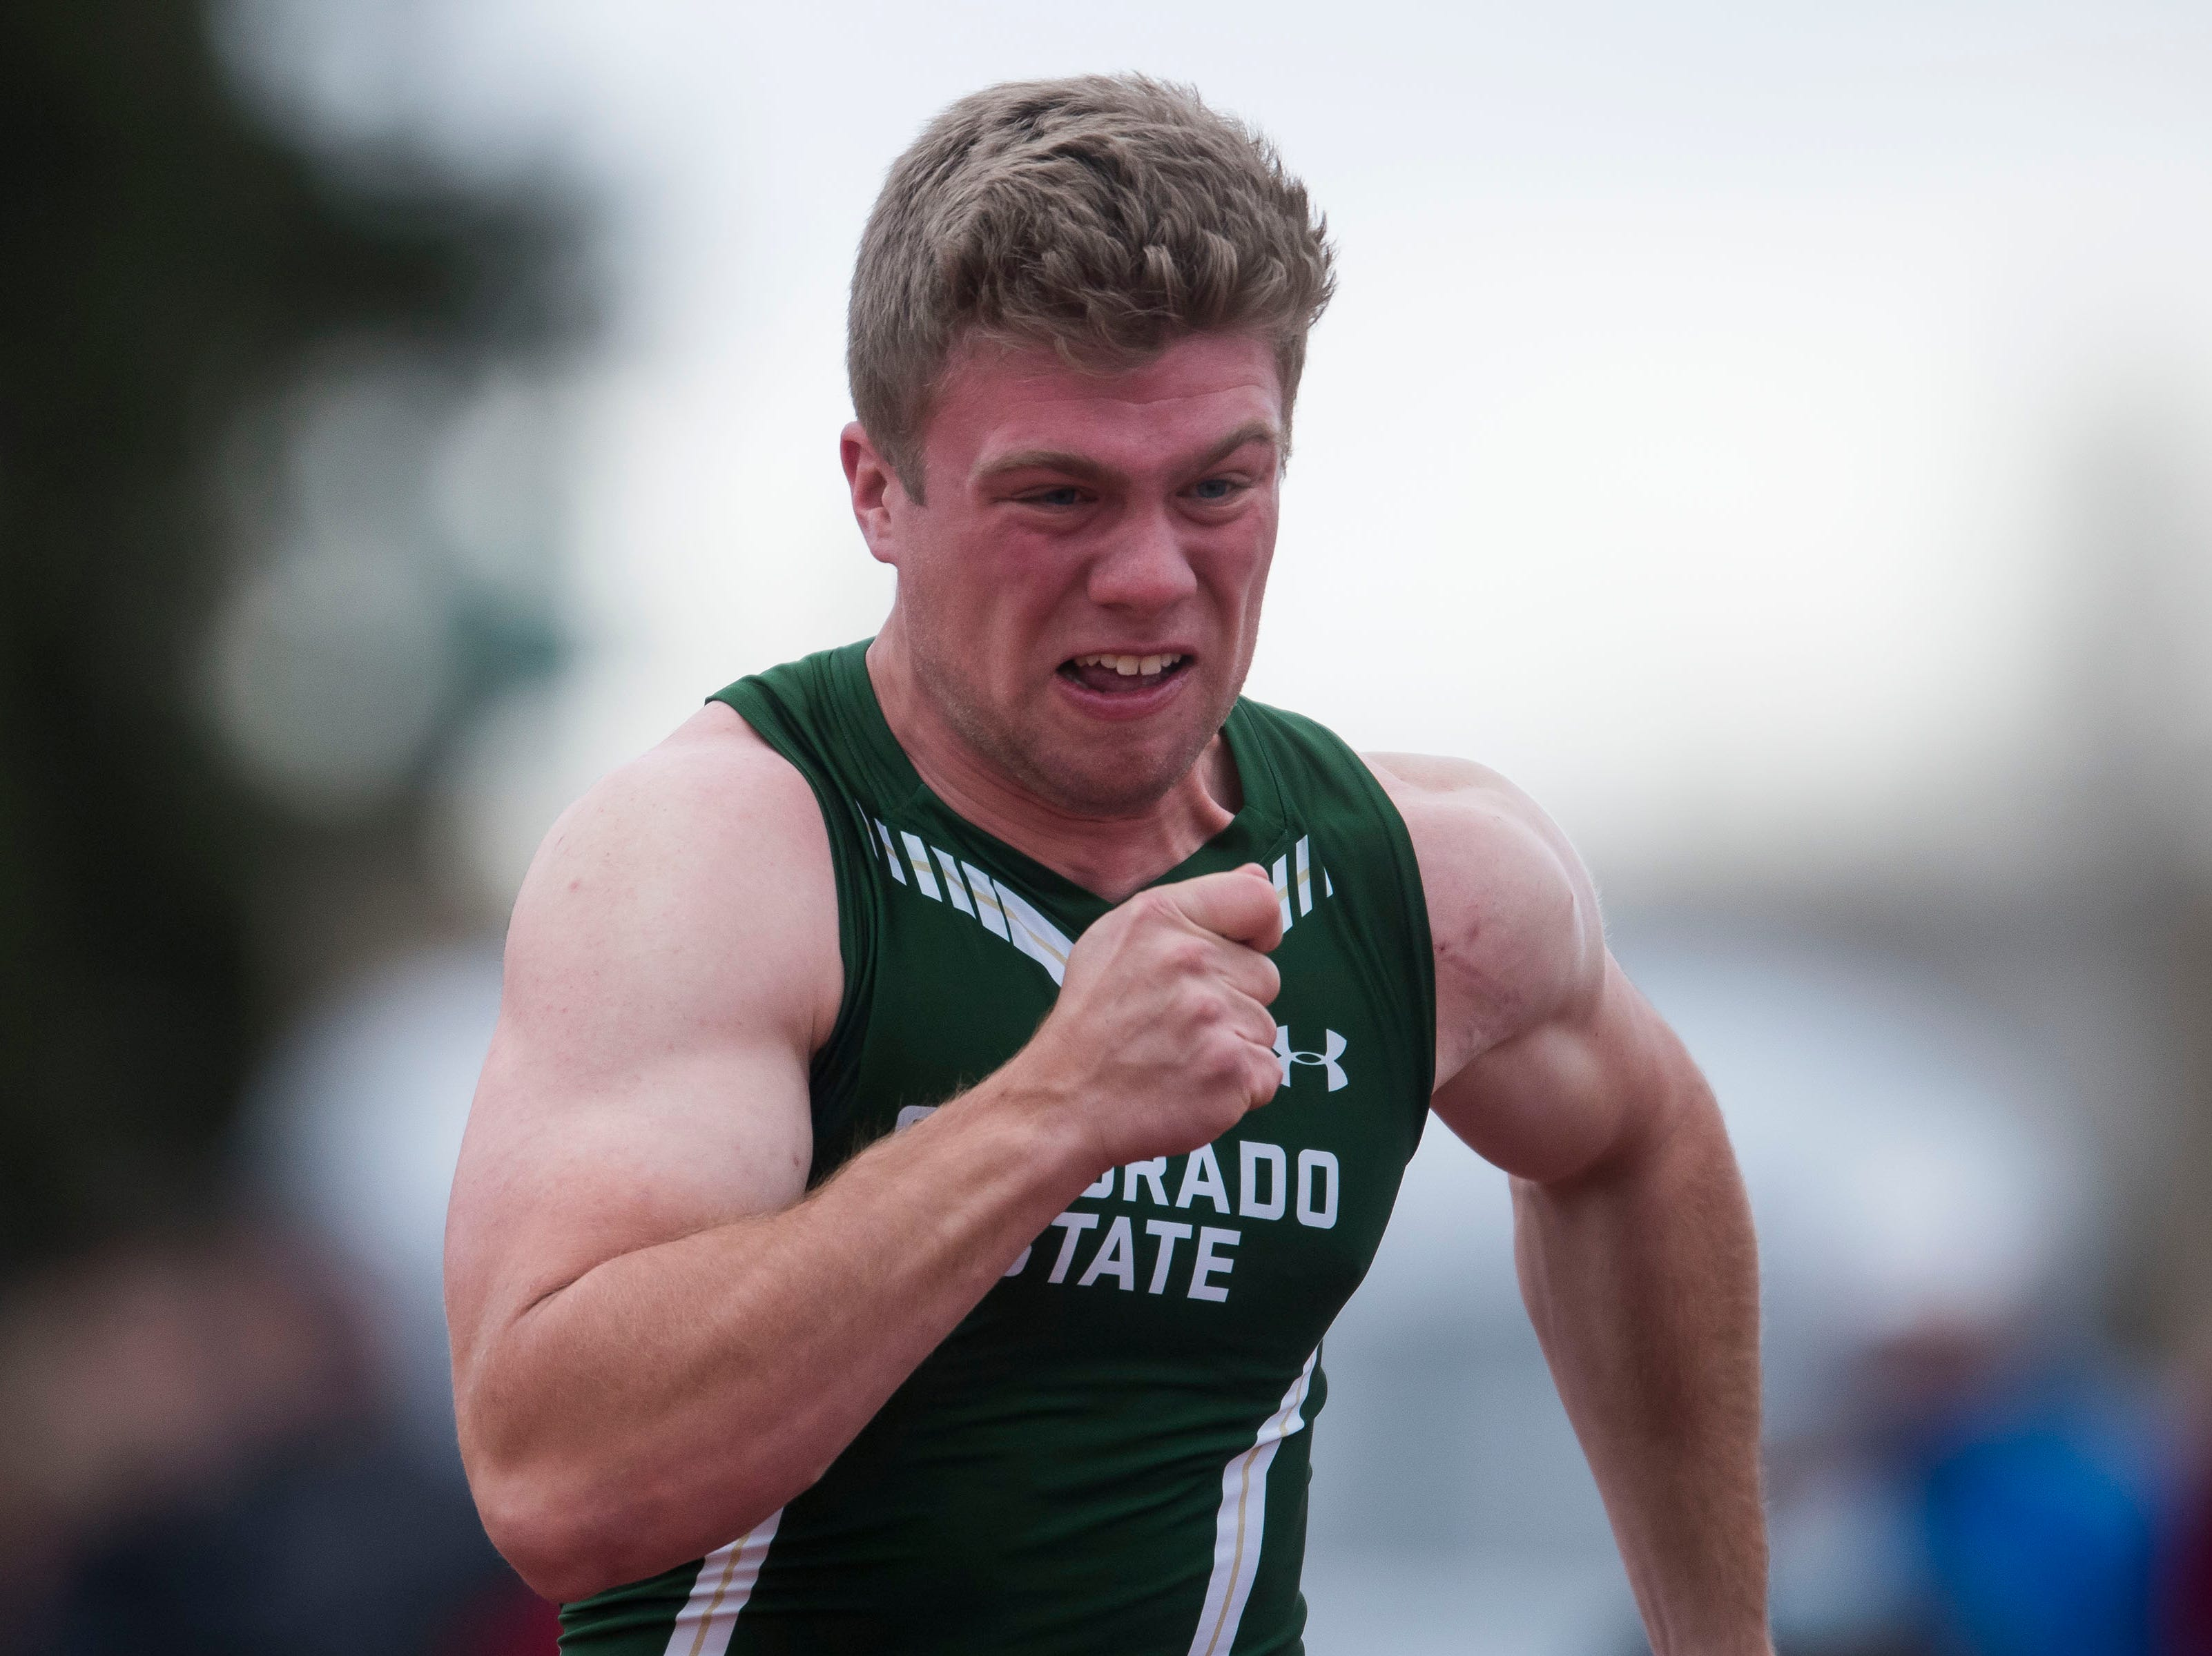 Colorado State University junior Will Domier competes in the mens 100-meter dash on Saturday, March 23, 2019, at the Jack Christiansen Memorial Track in Fort Collins, Colo.